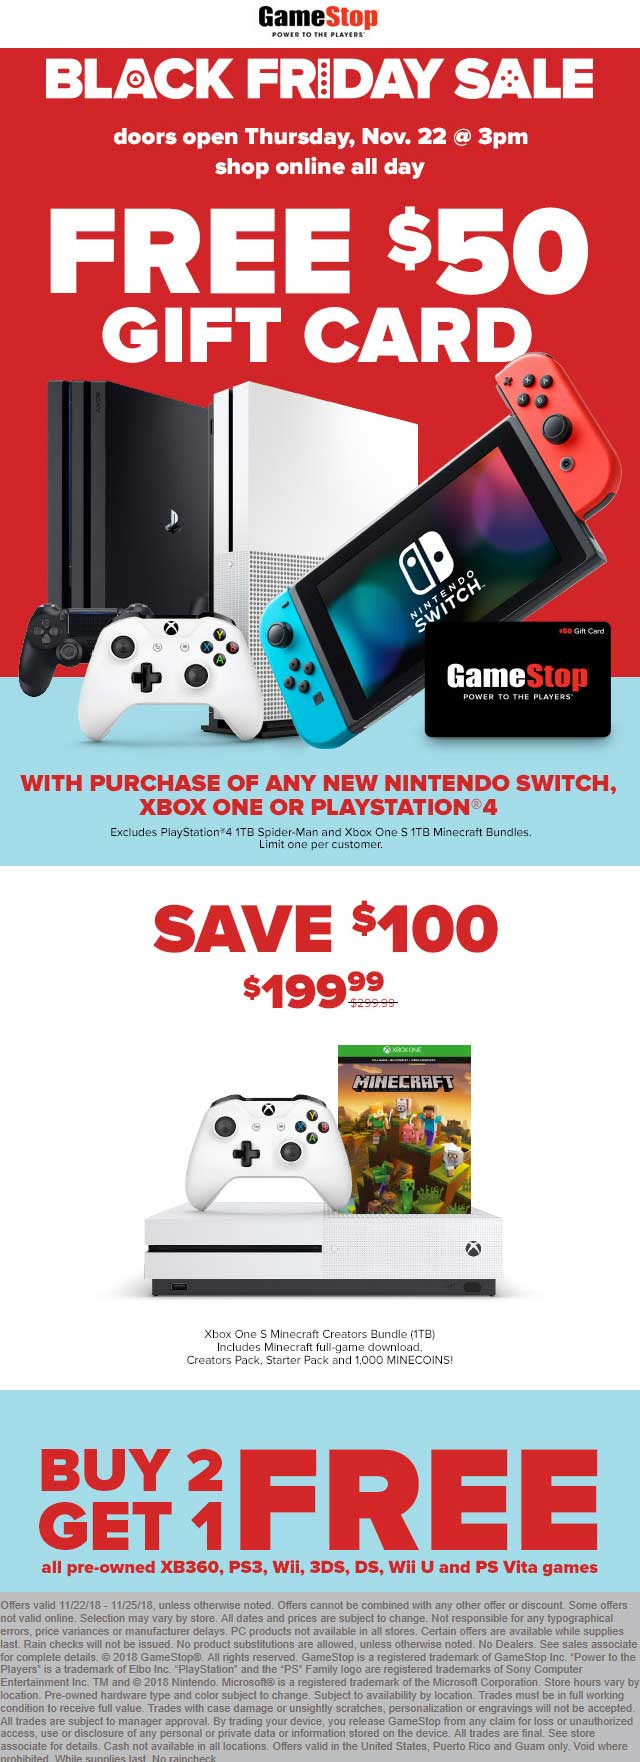 GameStop Coupon January 2020 Free $50 gift card with your console & $199 Xbox One S Minecraft at GameStop, ditto online